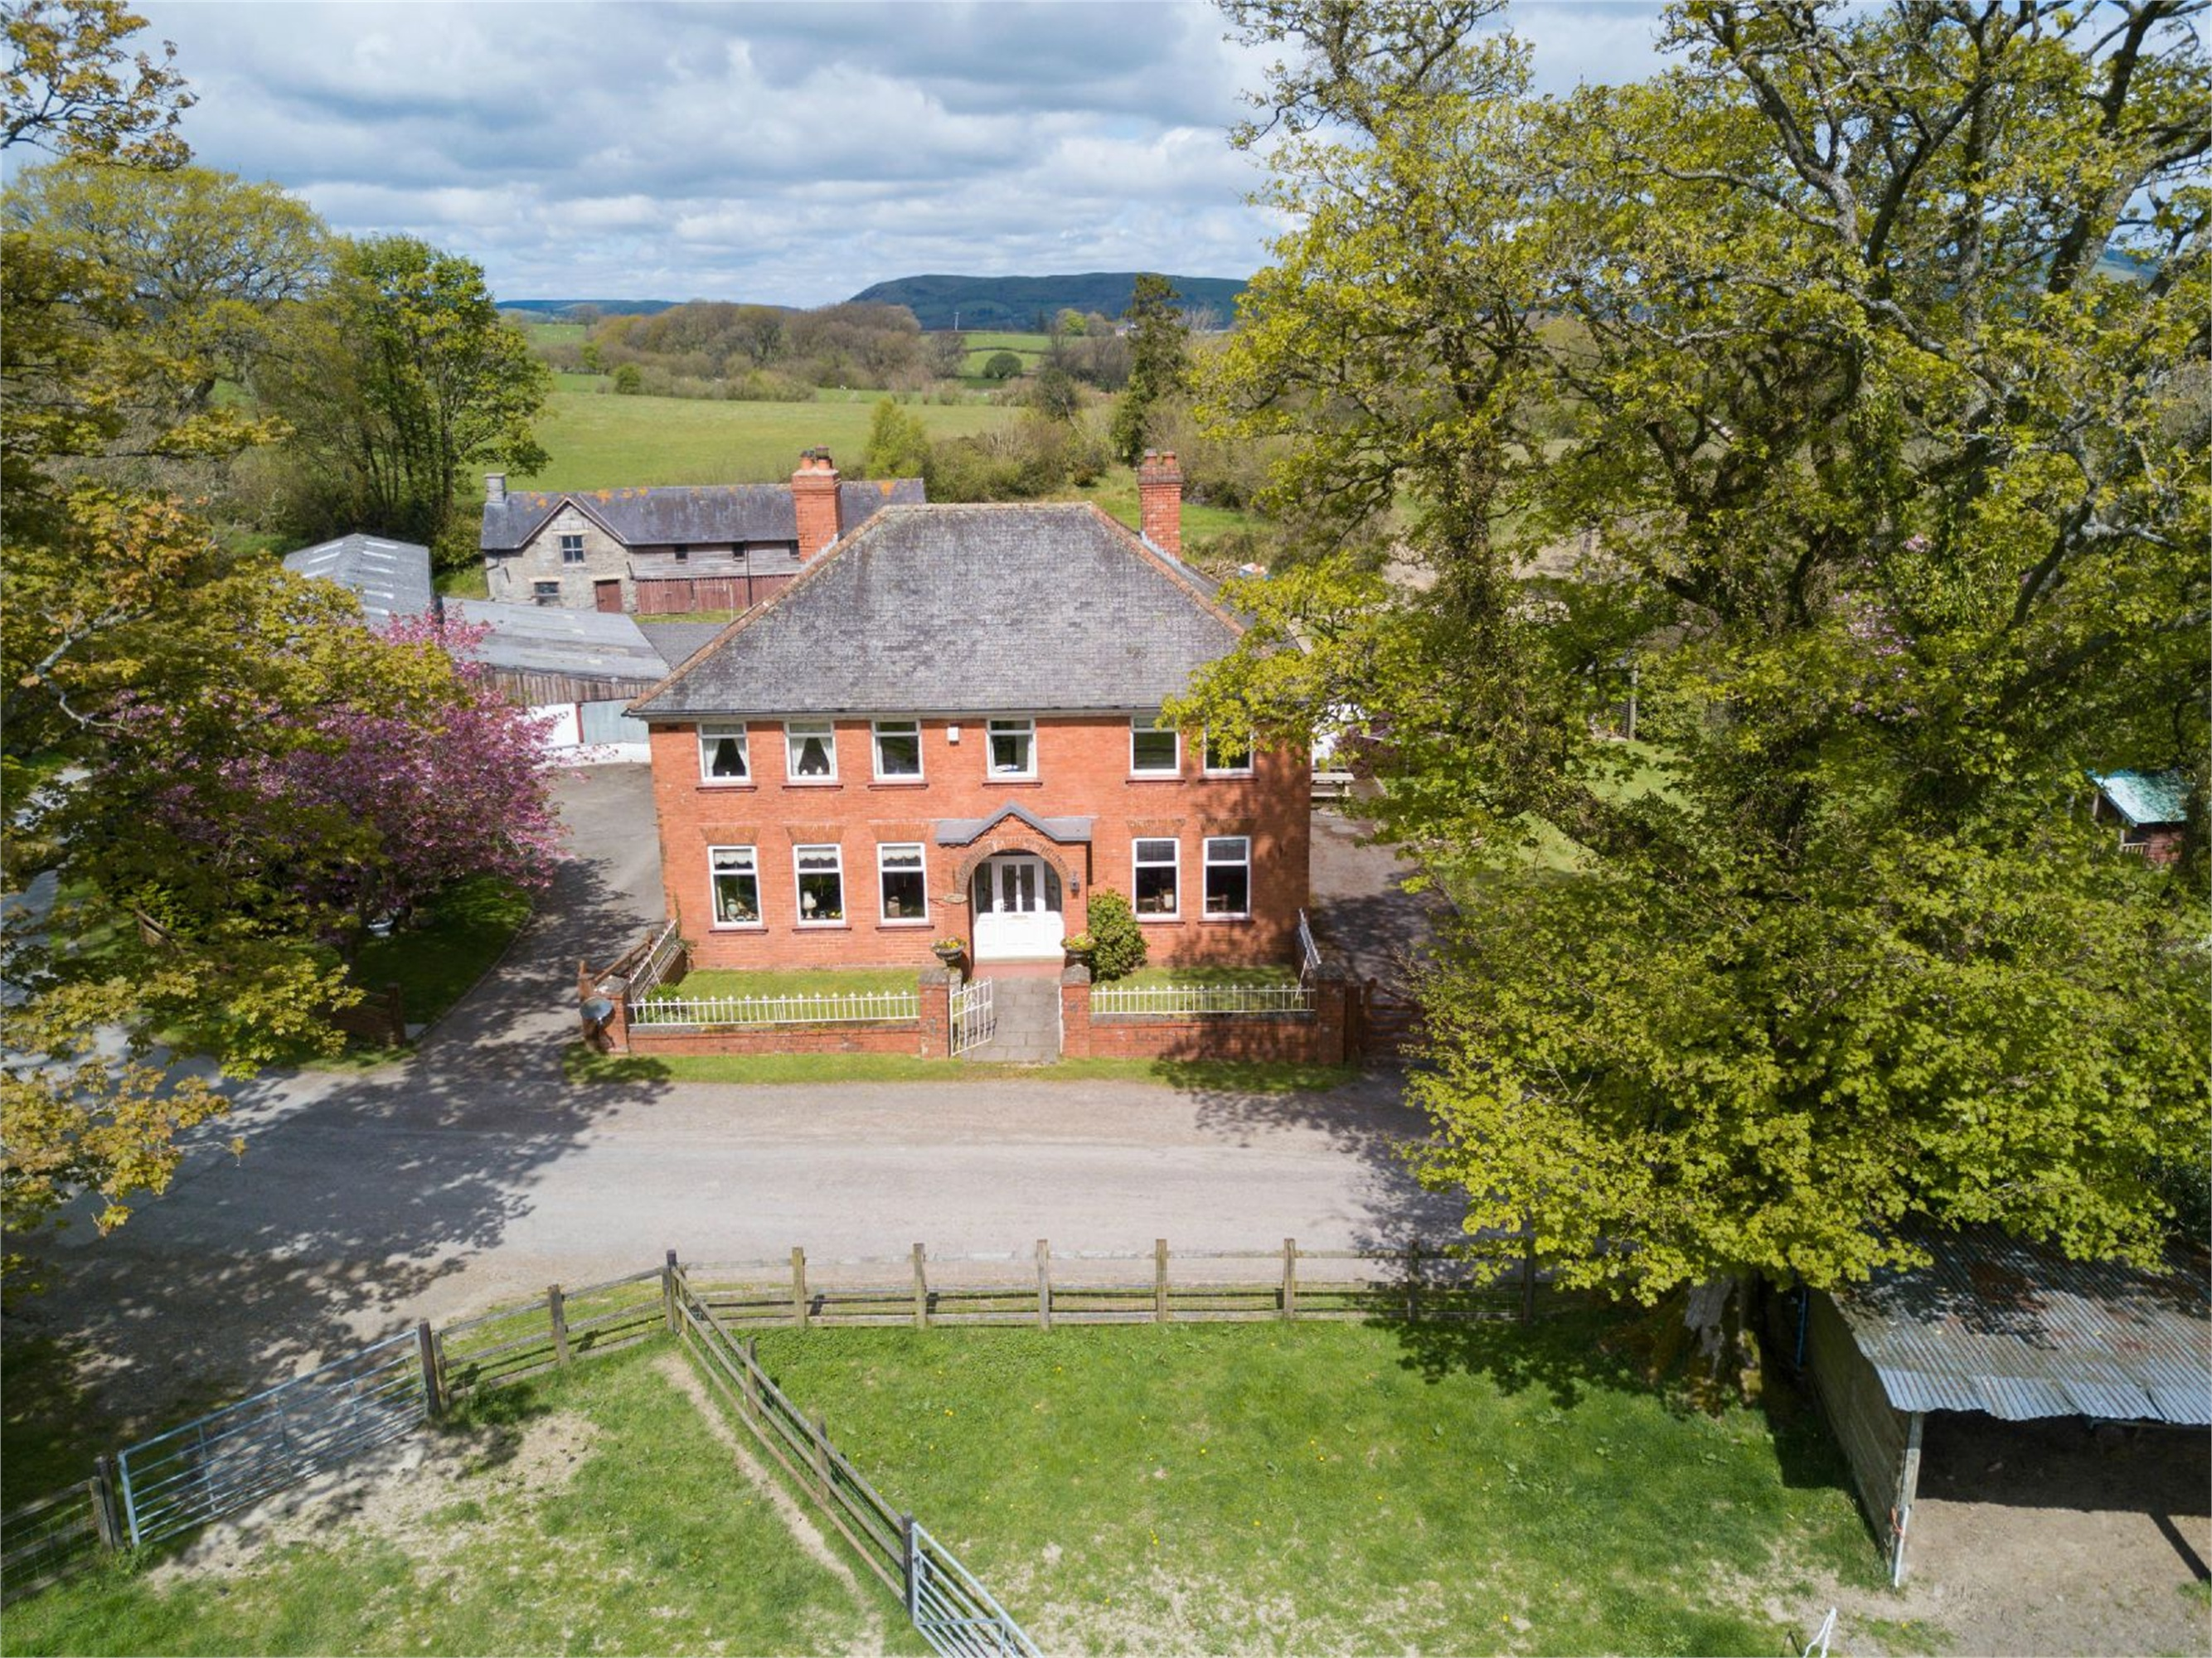 5 Bedrooms Detached House for sale in Lower Cefn Penarth, Crossgates, Llandrindod Wells, Powys, LD1